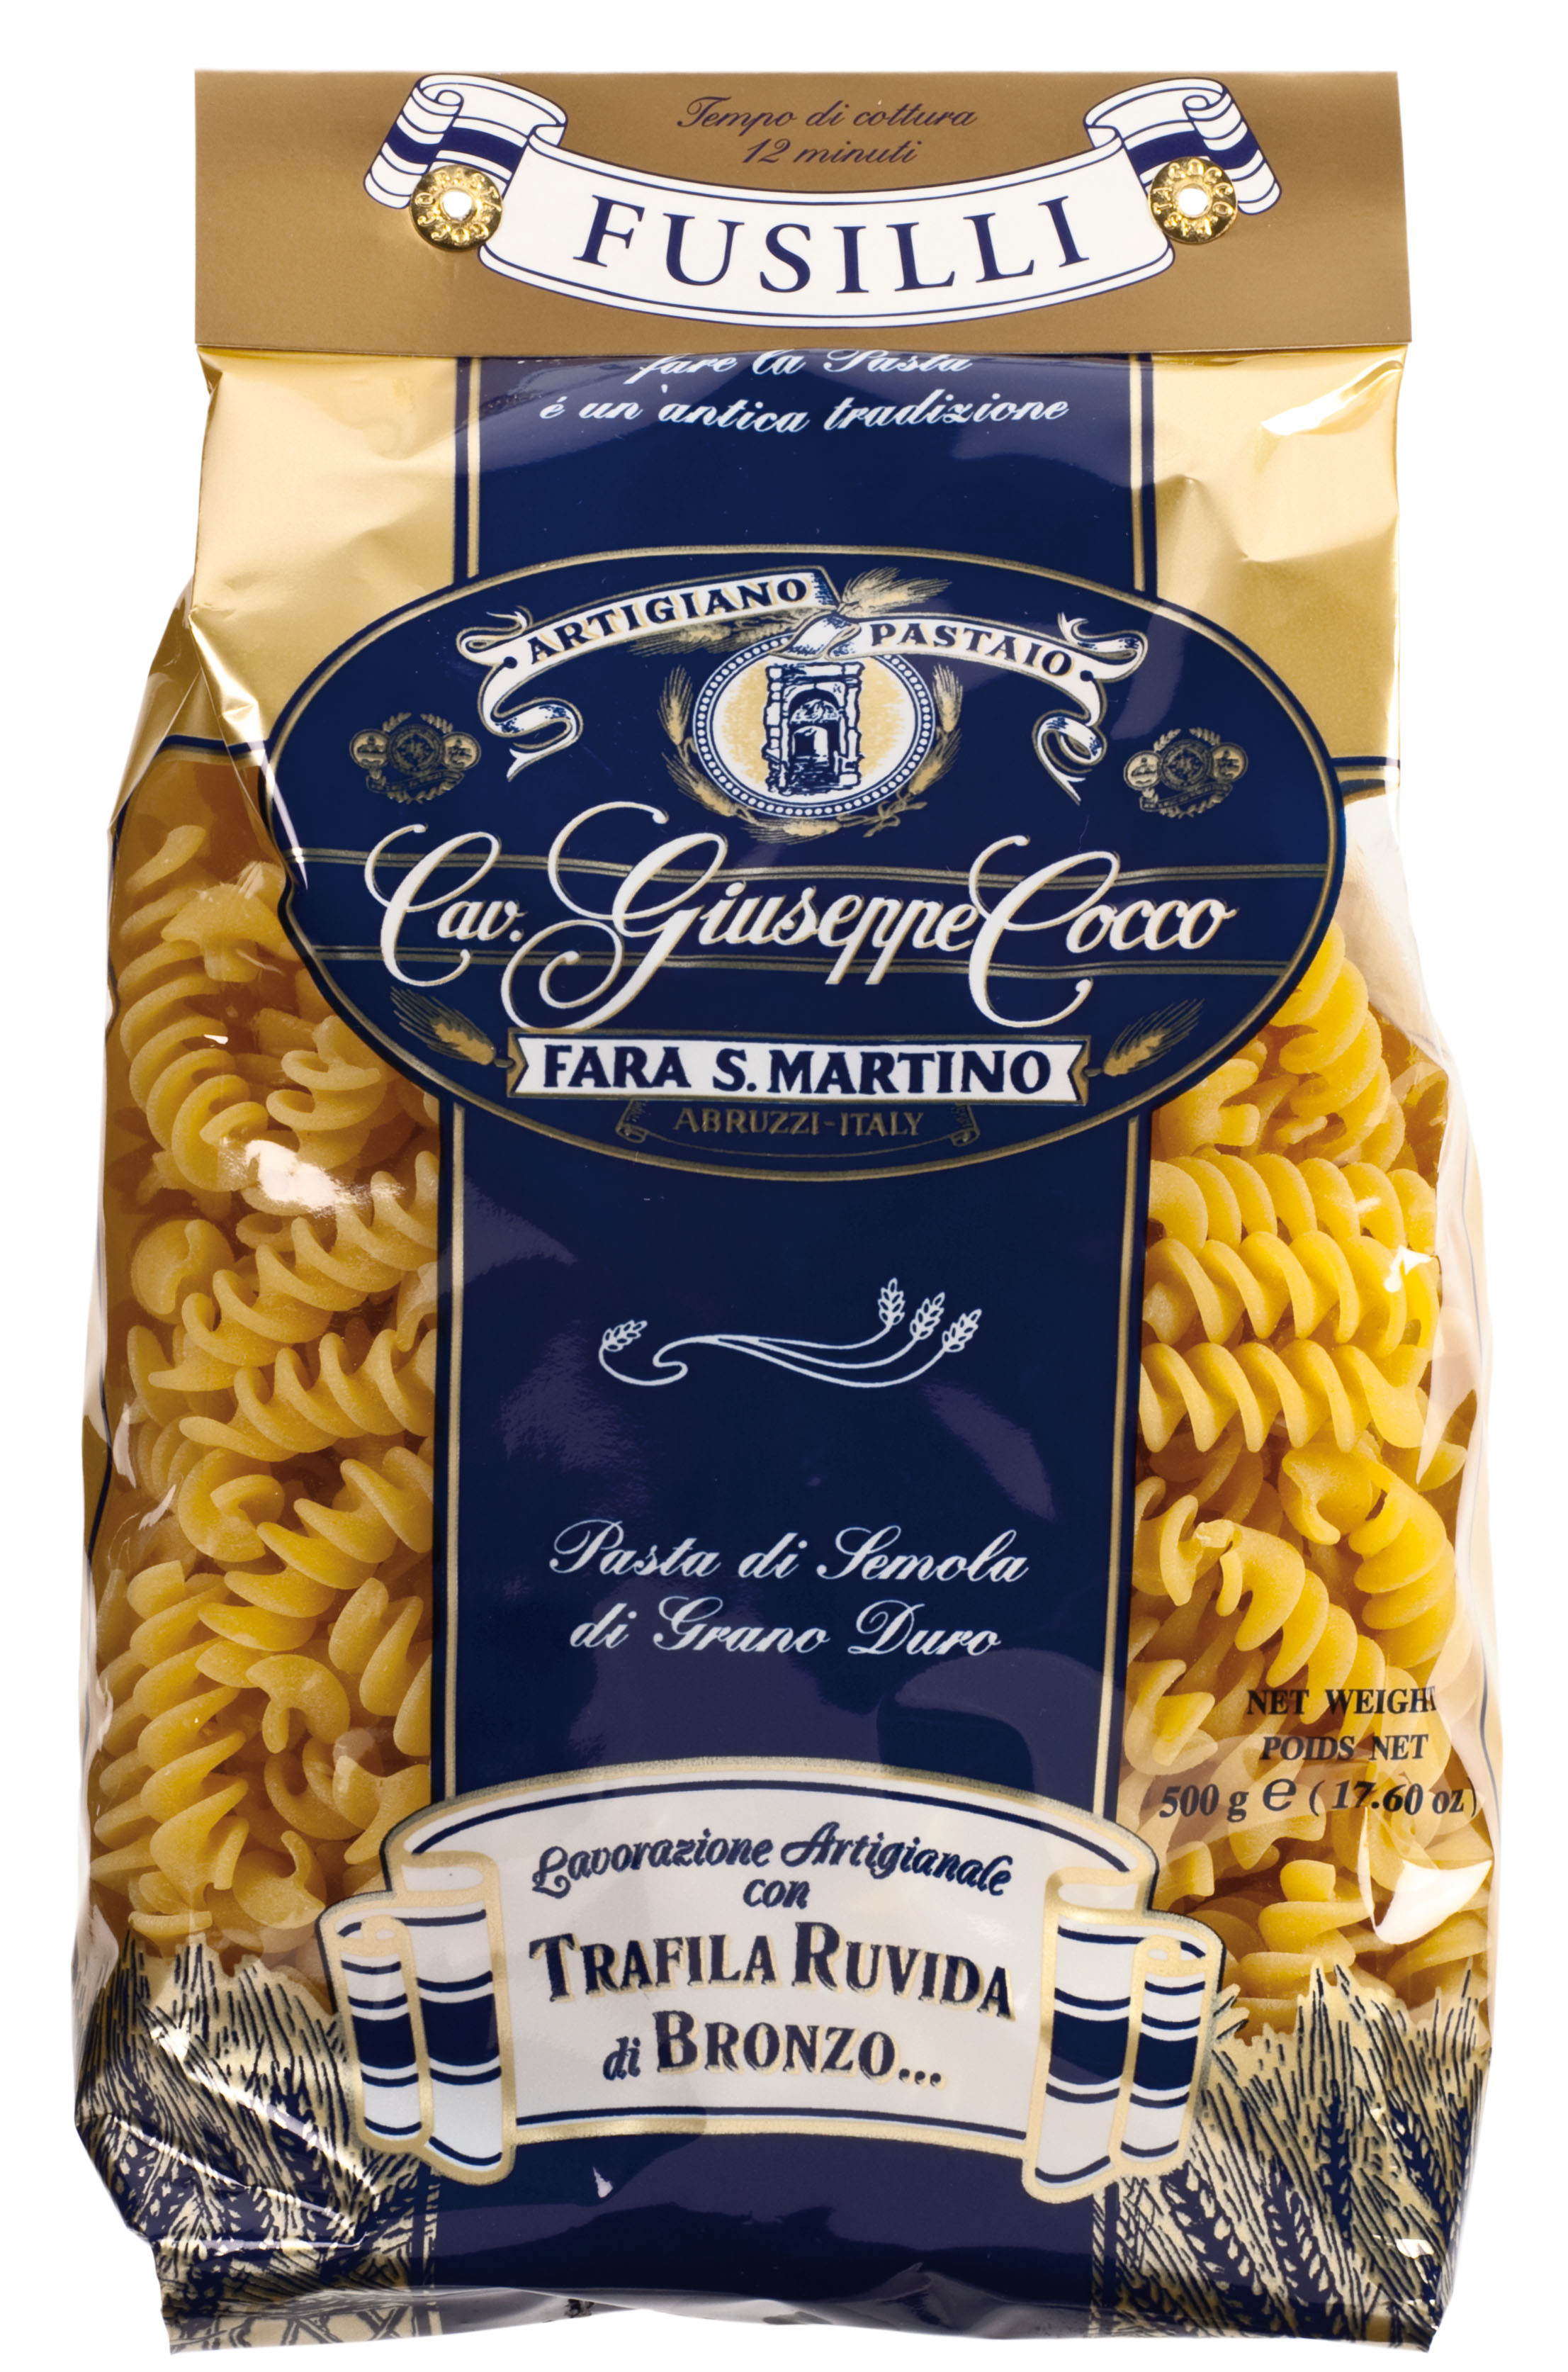 Fusilli Nr. 43 500 g Packung Cocco